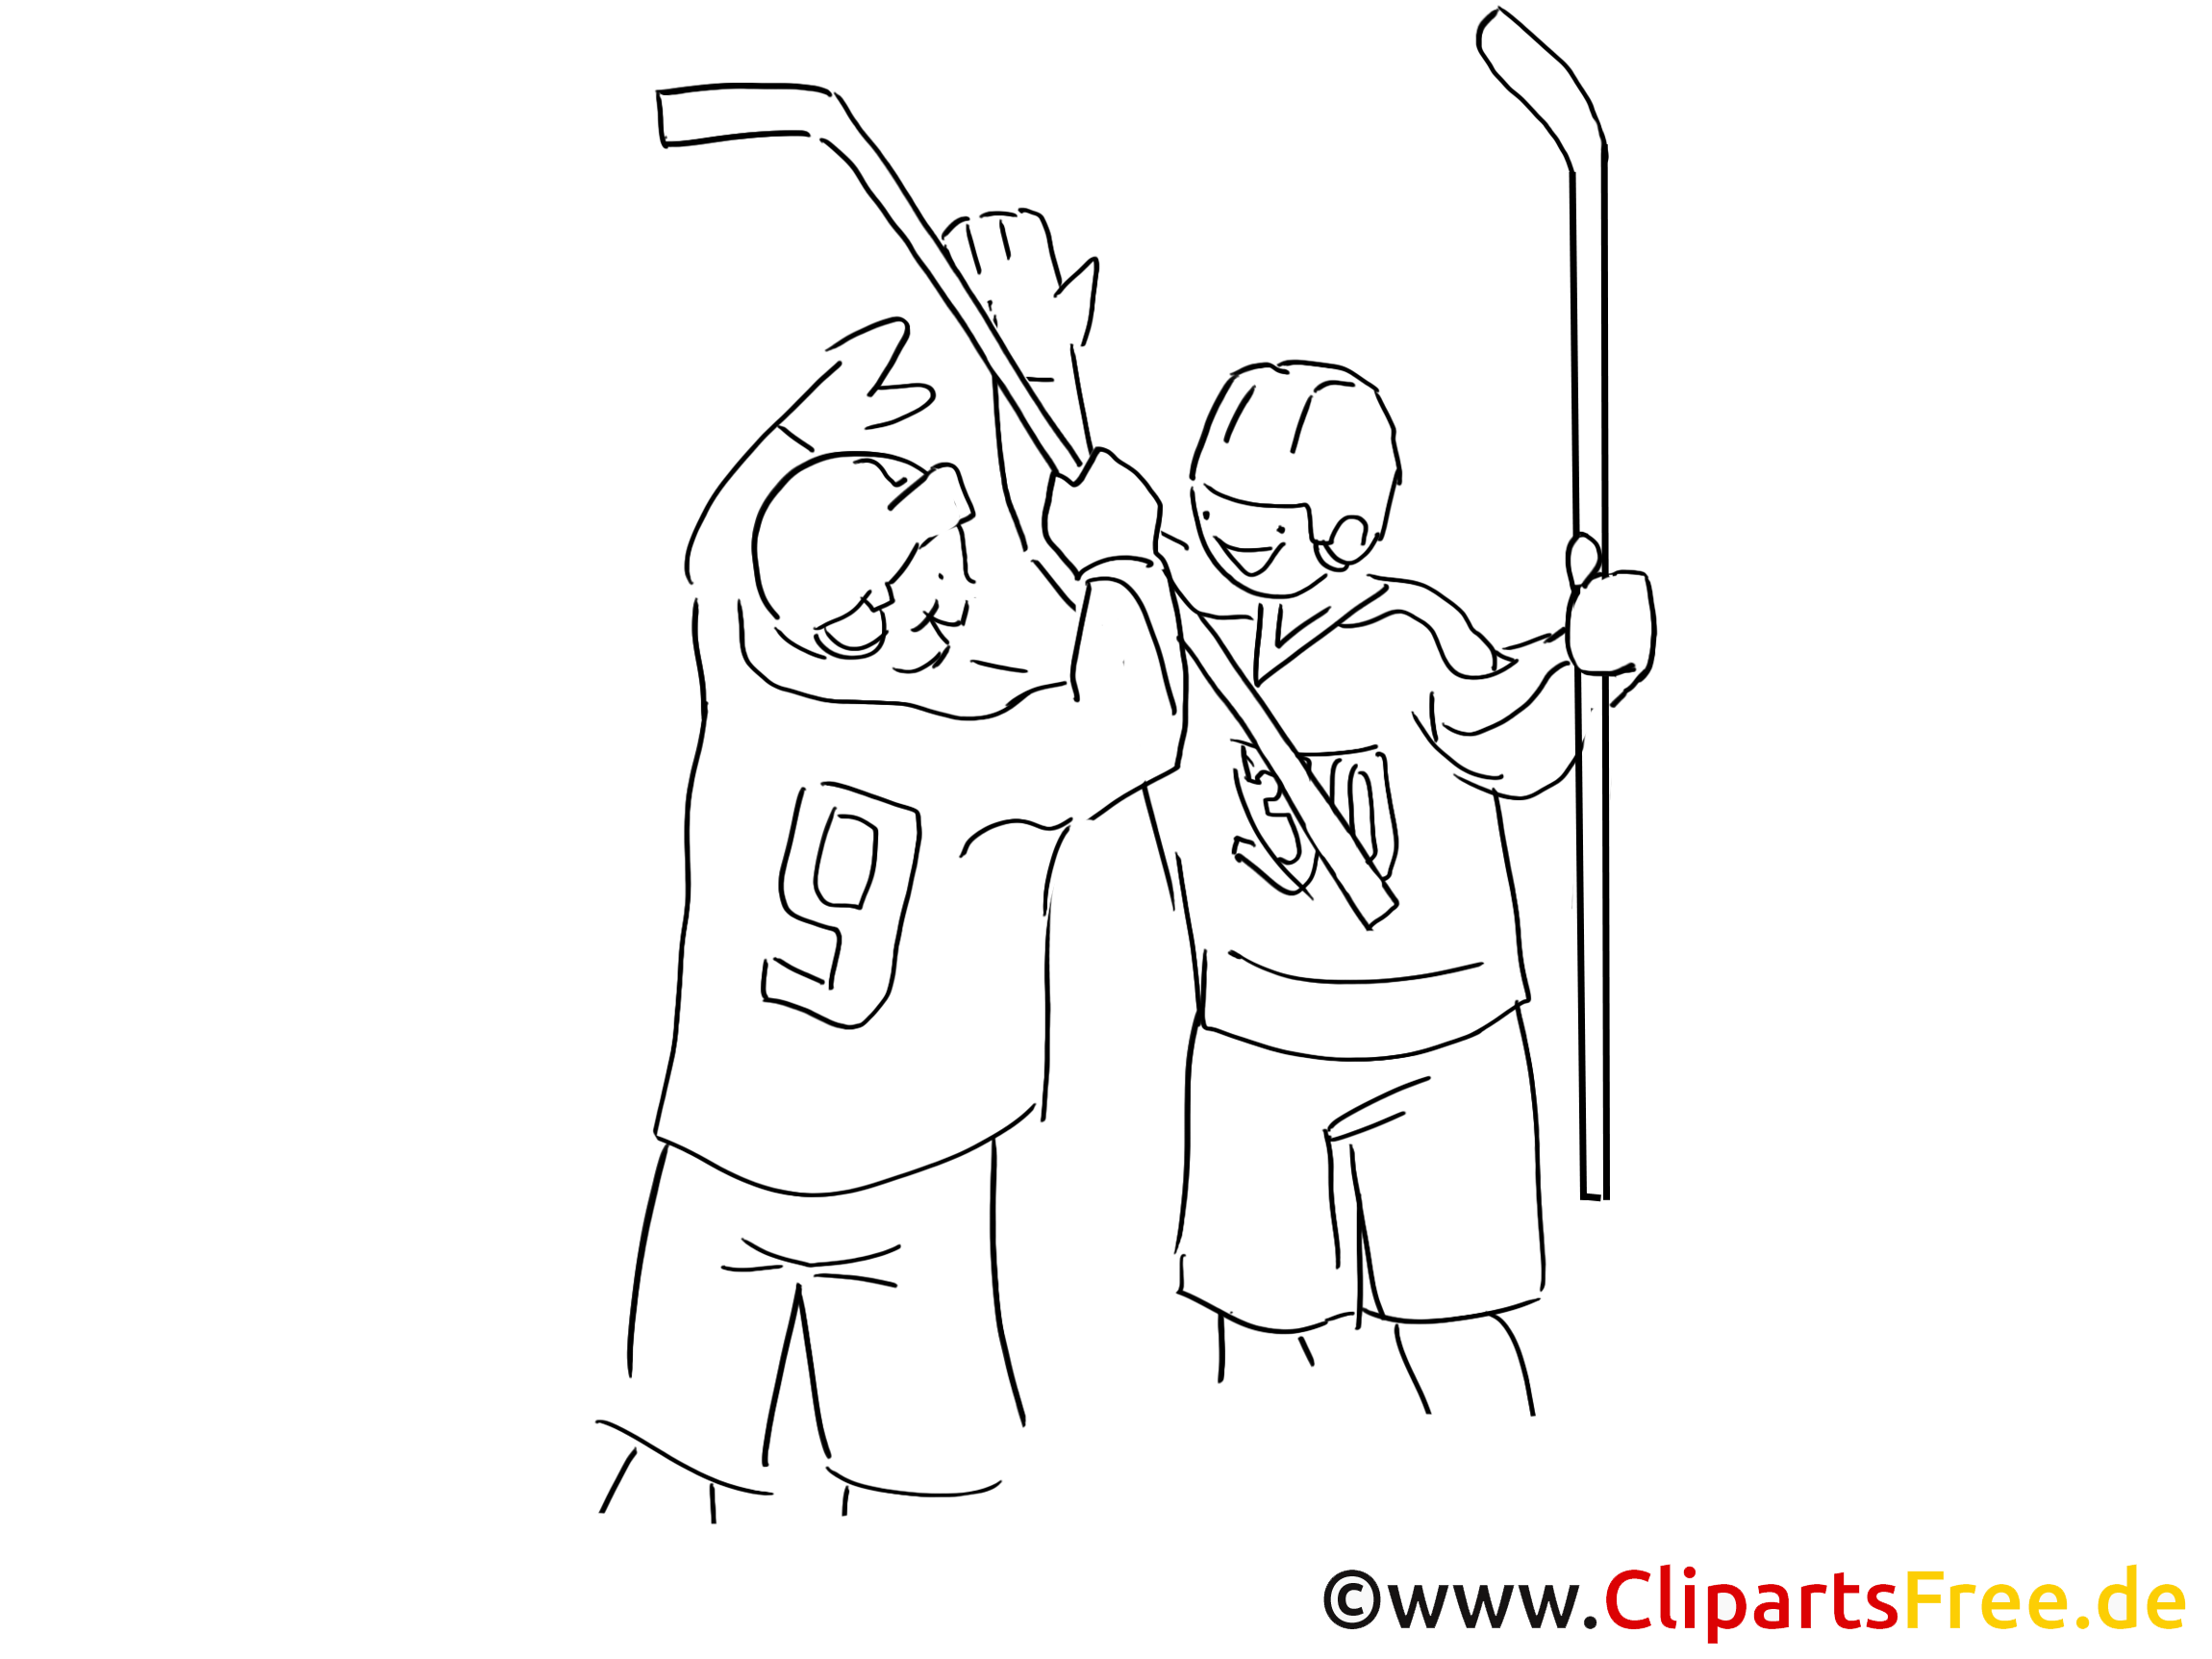 Gagnants images à colorier - Hockey dessins gratuits